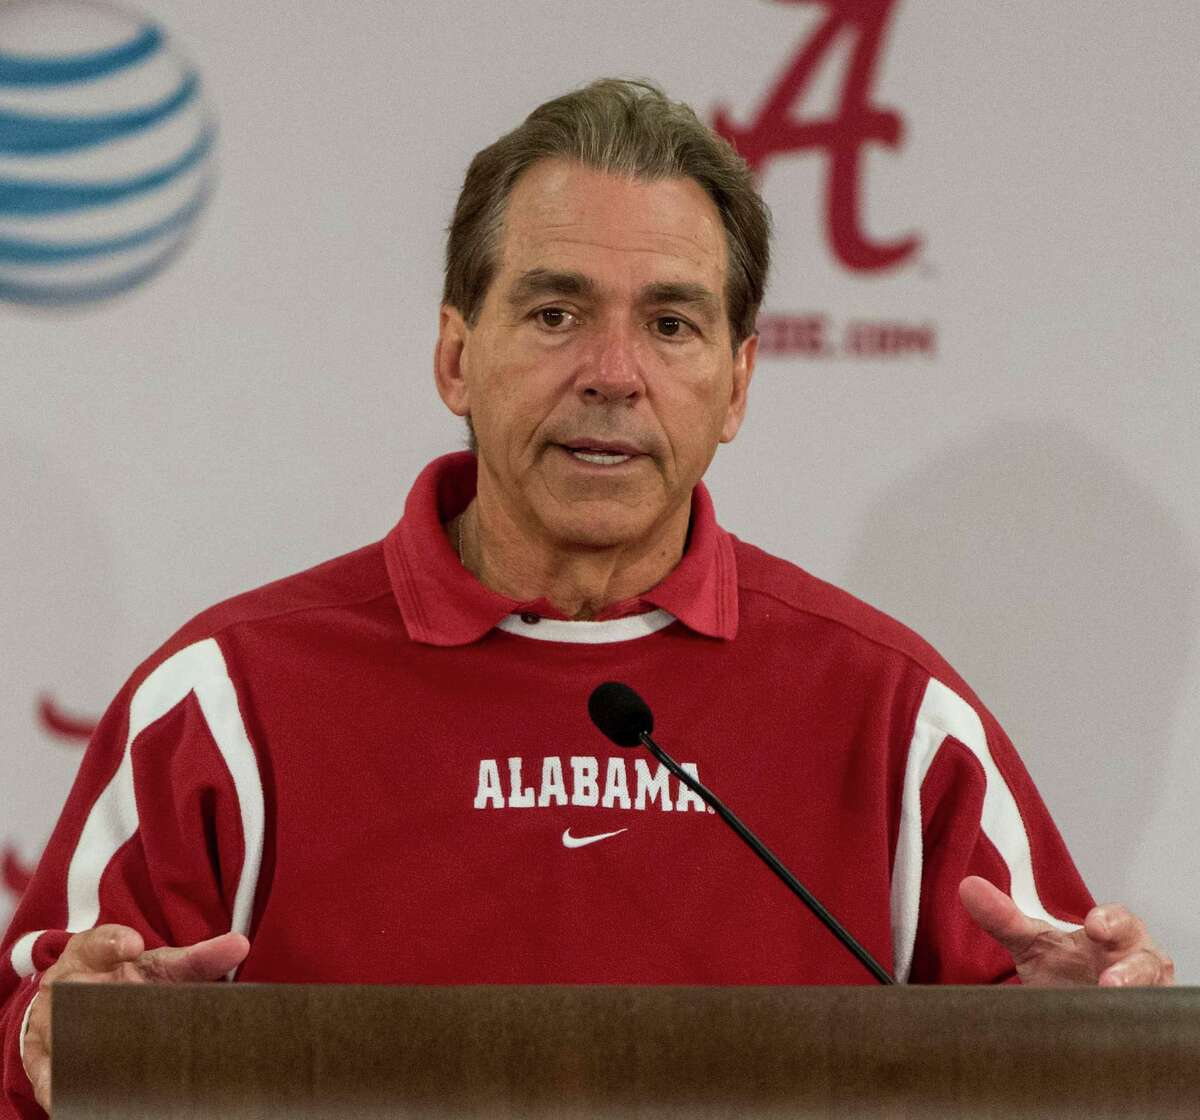 Alabama coach Nick Saban speaks about spring practice during an NCAA college football, Friday, March 11, 2016, at the Mal Moore Athletic Facility in Tuscaloosa, Ala. (Vasha Hunt/AL.com via AP) MAGS OUT; MANDATORY CREDIT